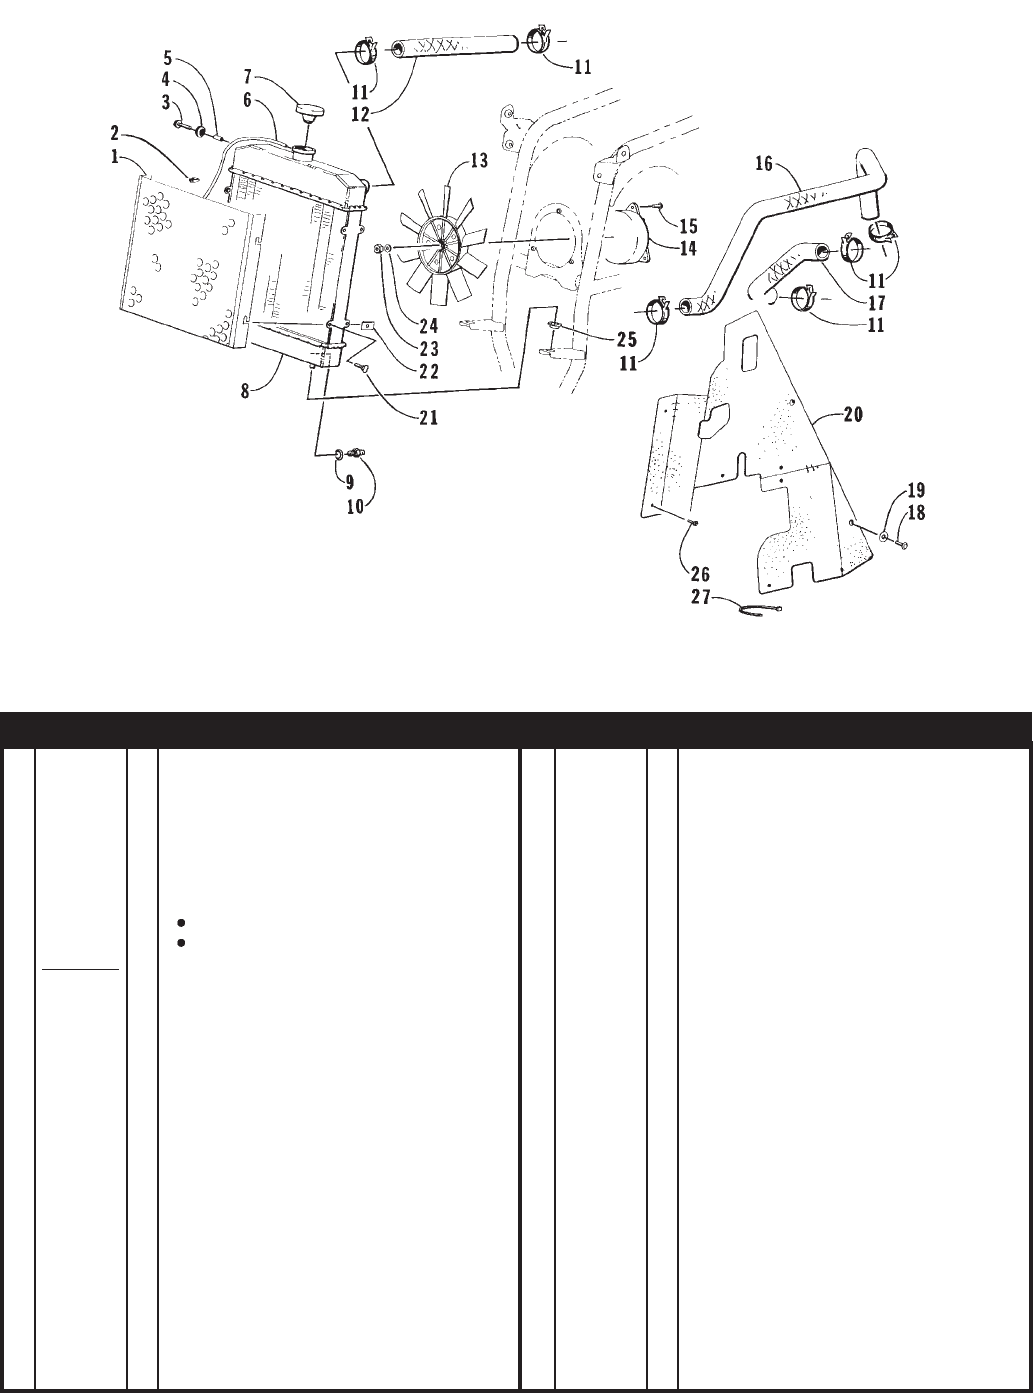 Arctic Industries Bearcat Atv 2x4 97a2a Ap Users Manual 543 Cat Engine Diagram Cooling Assembly